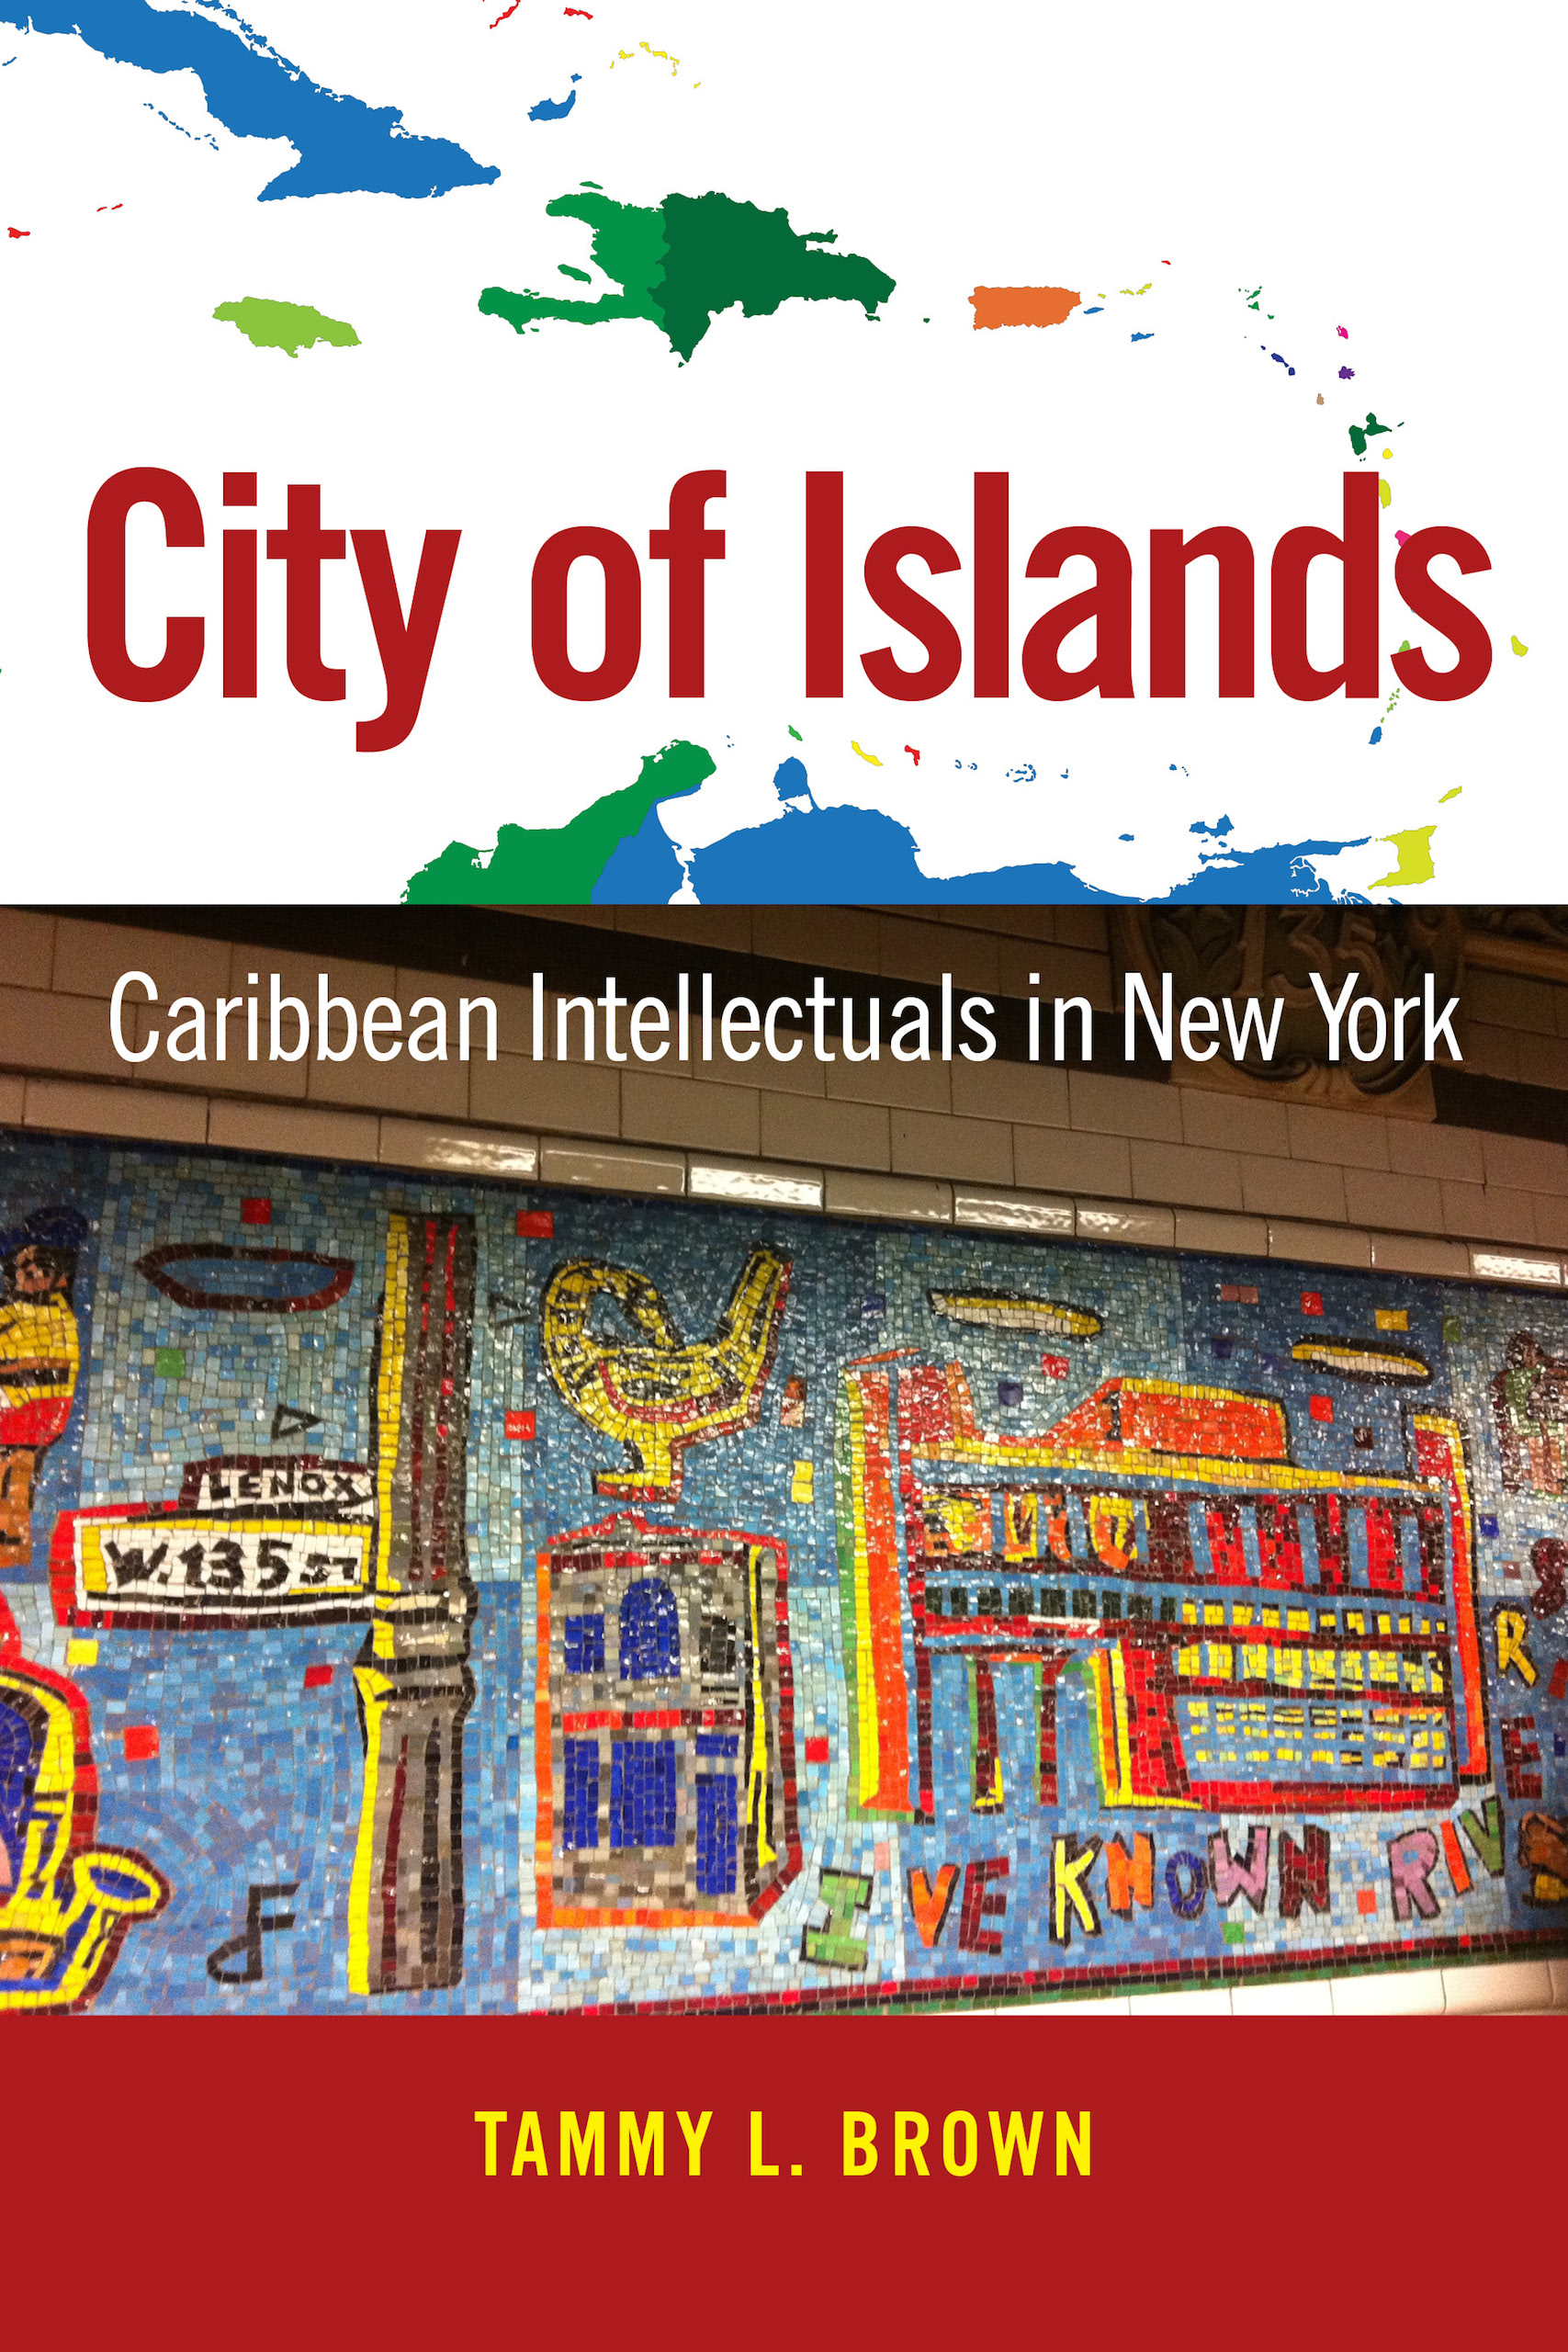 caribbean immigrants to new yorkus essay